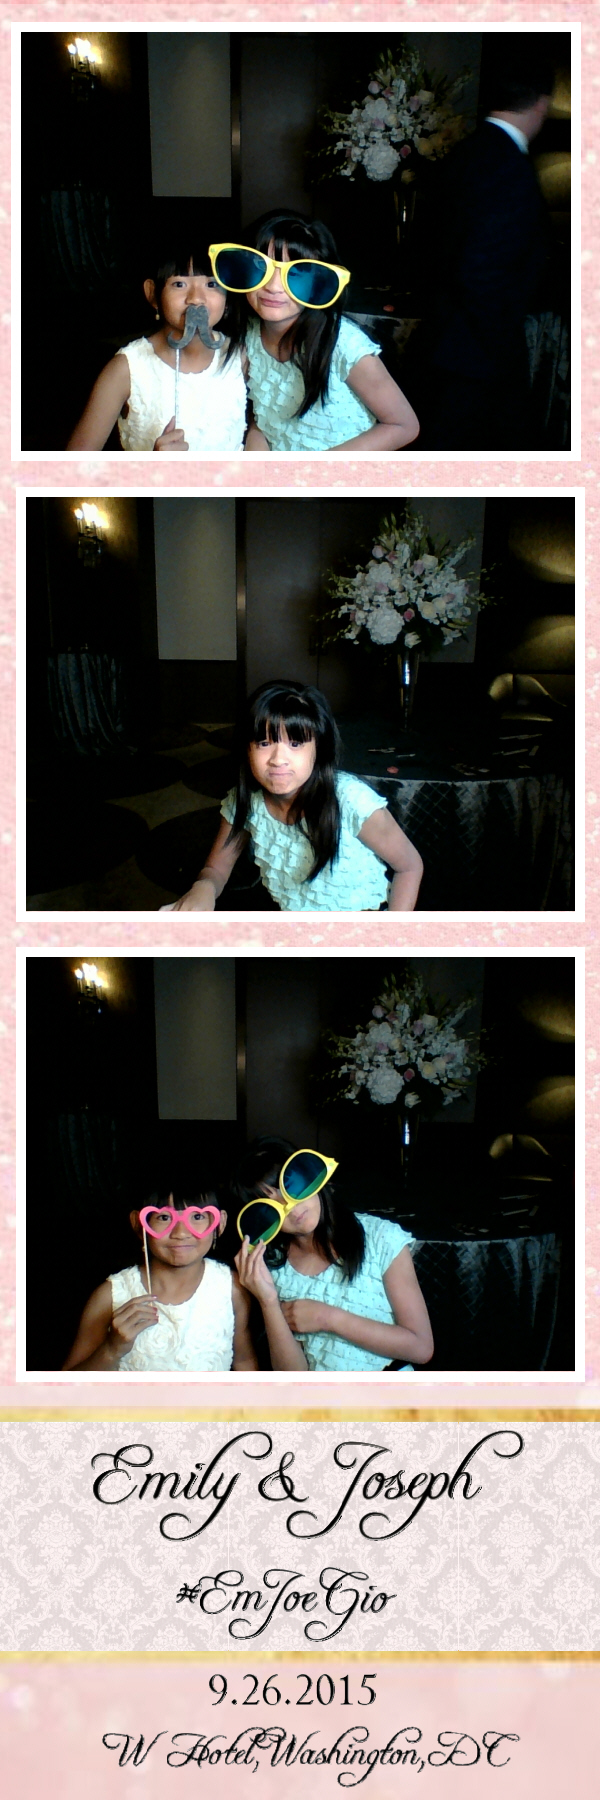 Guest House Events Photo Booth E&J (37).jpg